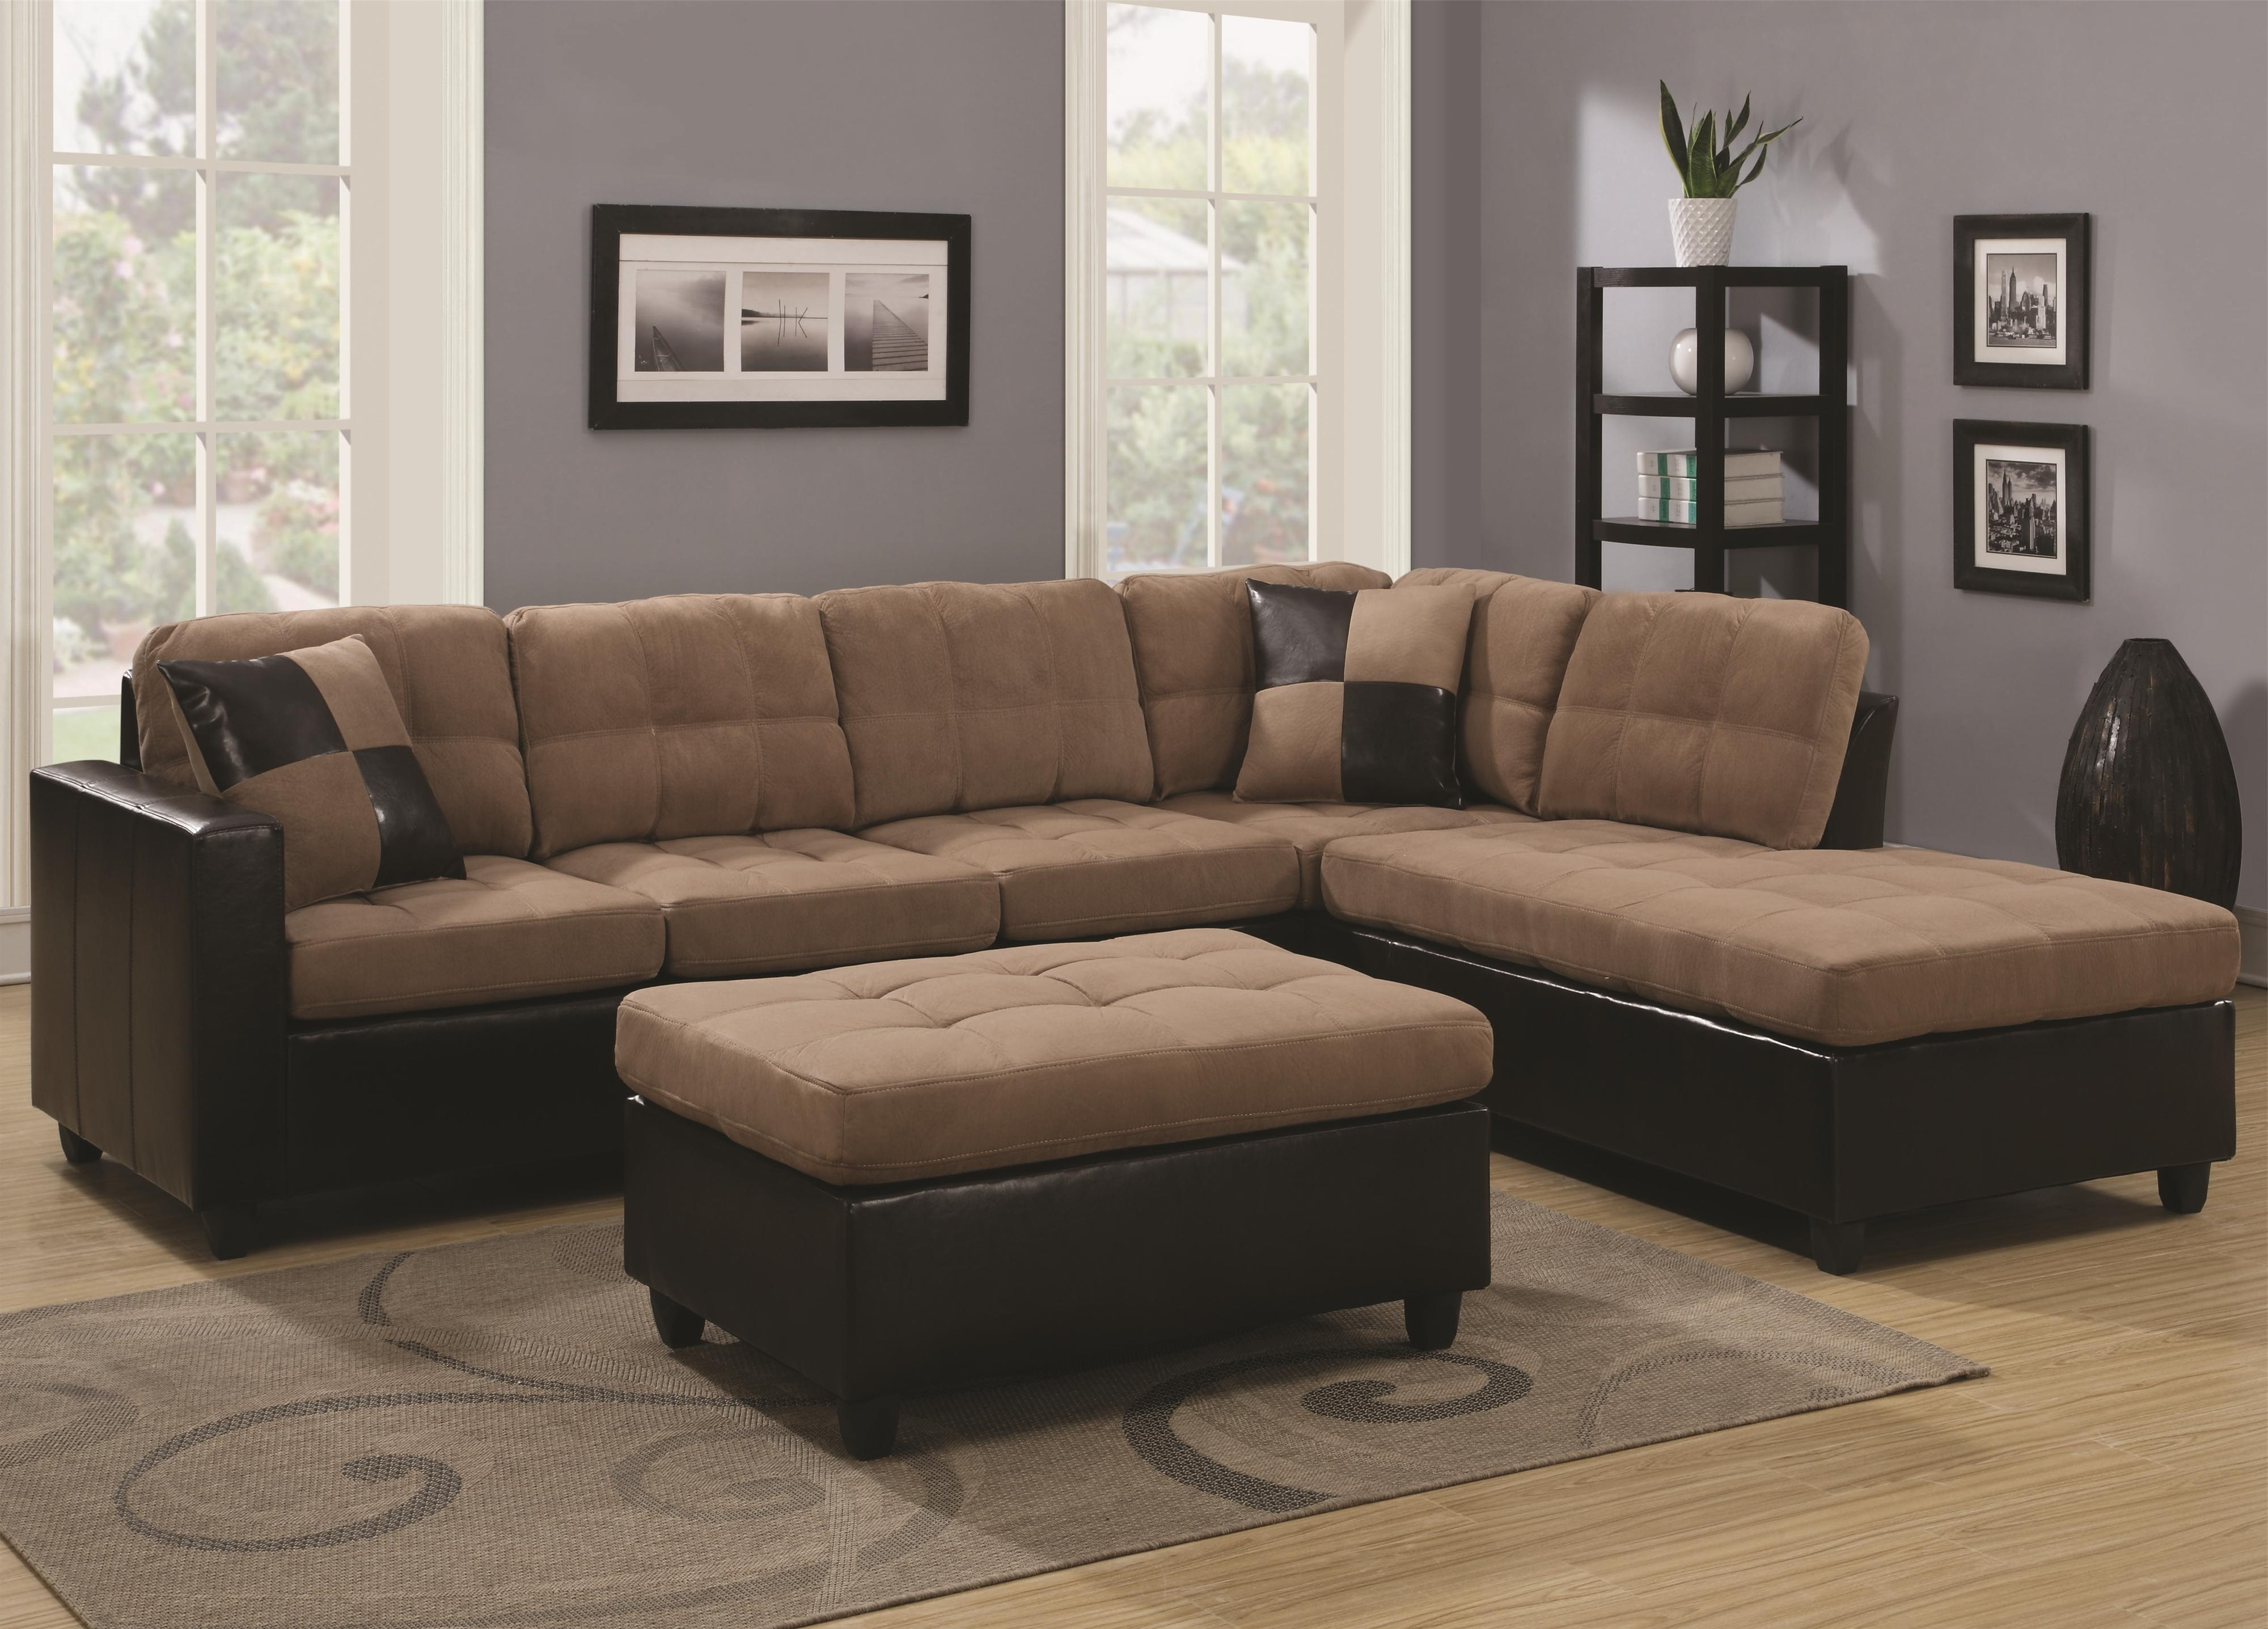 Affordable Sectional Sofas Intended For Latest Sectional Sofas On Sale (View 3 of 15)